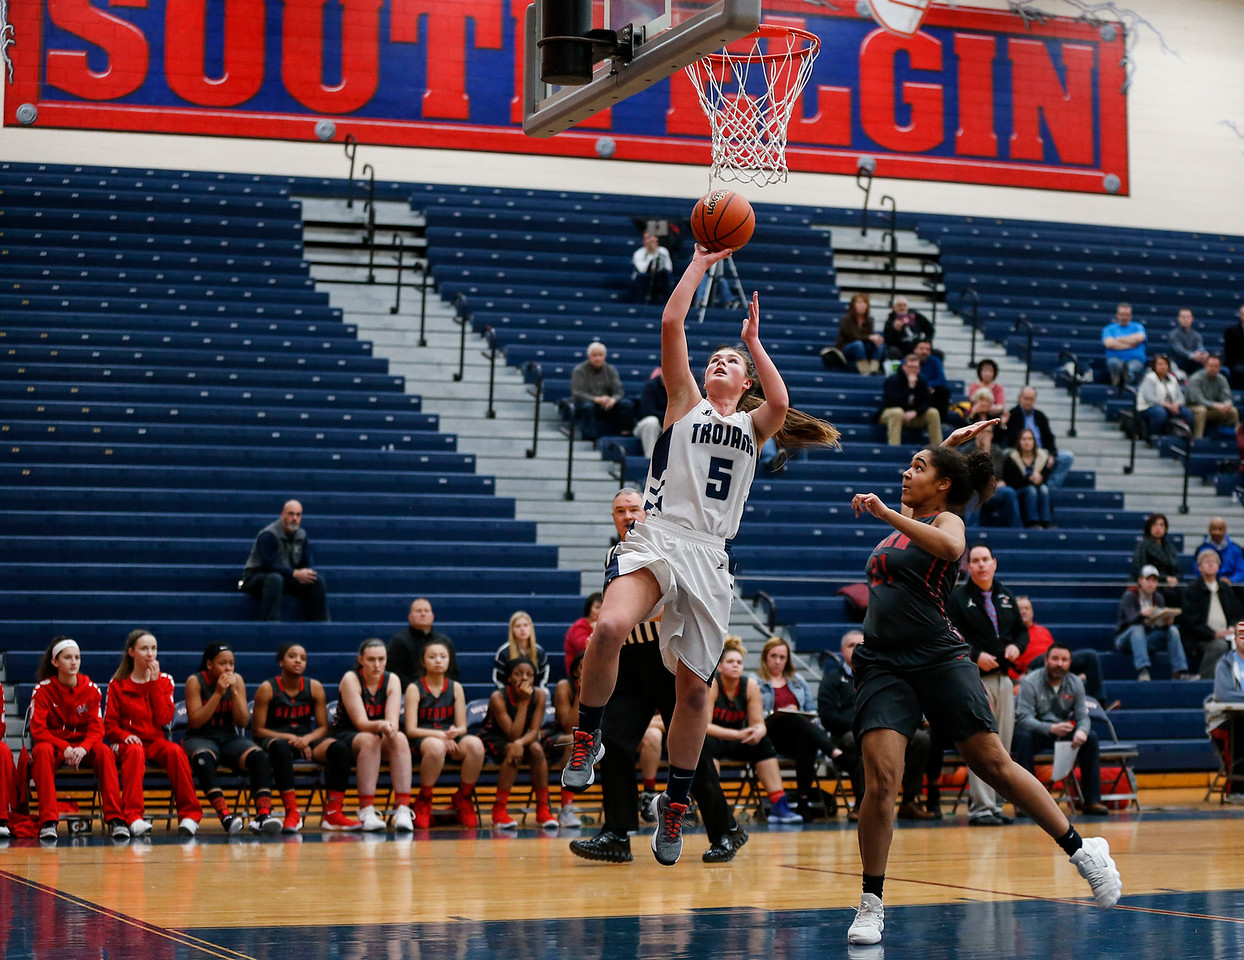 Maddie Jannusch (5) from Cary-Grove drives in for a layup over Erika Burns (21) from South Elgin in the second quarter of their Class 4A South Elgin Regional game on Tuesday, February 13, 2018 in South Elgin, Illinois. The Trojans defeated the Storm 69-37. John Konstantaras photo for Shaw Media